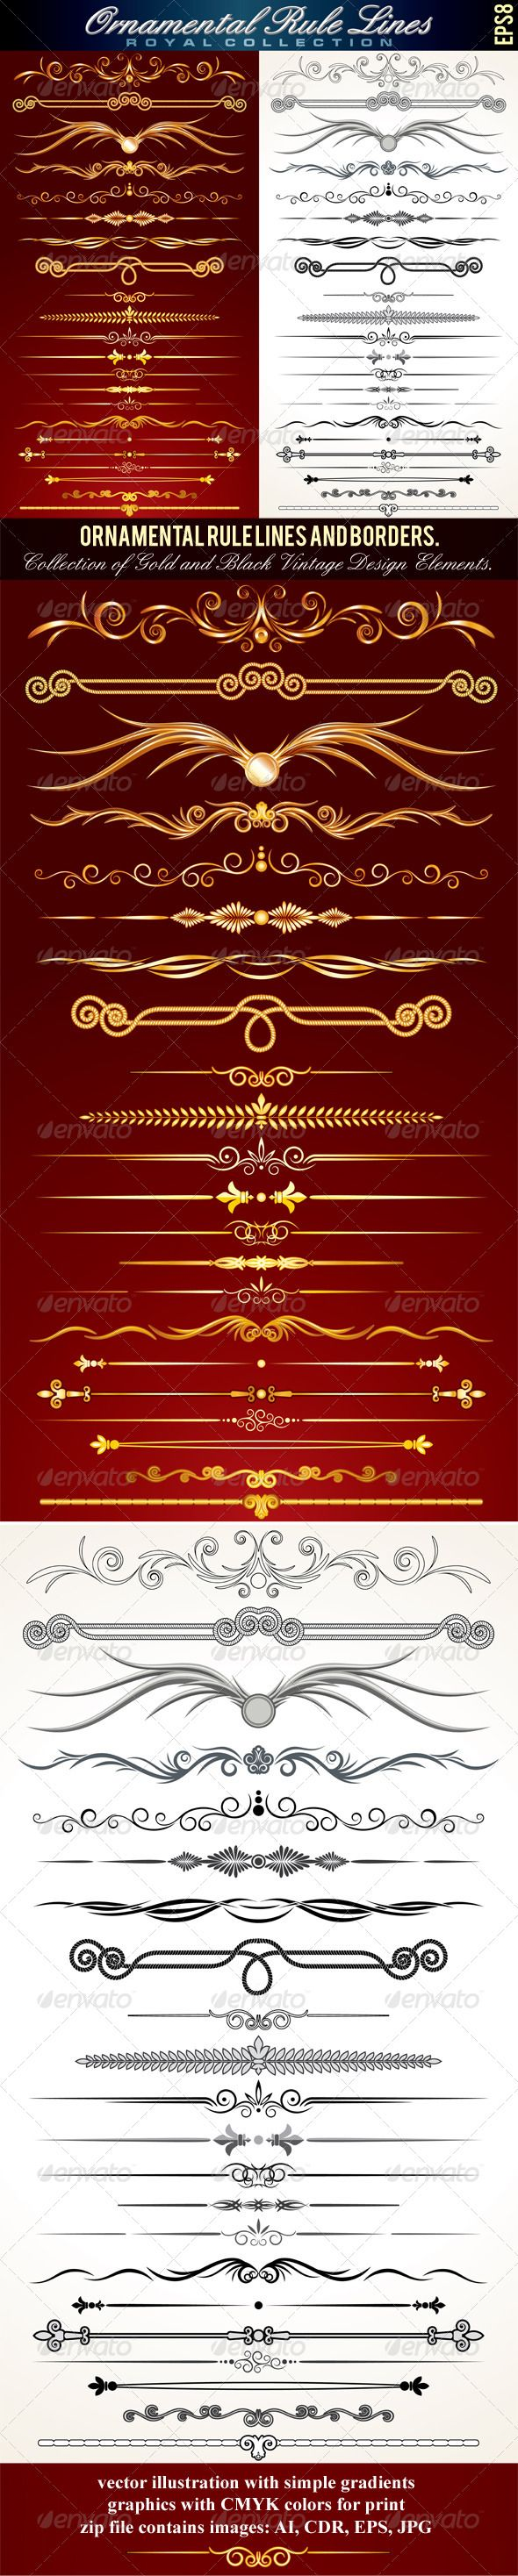 Ornamental Rule Lines  #GraphicRiver         Collection of Ornamental Rule Lines in Different Design Styles. Vector Set   - vector illustration with simple gradients   - vector graphics with CMYK colors for print   - zip file contains images: AI, CDR, EPS, JPG   Keywords: spiral, styles, floral, accent, background, deco, silhouette, fashion, graphics, isolated, tattoo, rule line, black, icon, filigree, wedding, antique, flourish, frame, premium       MORE VECTOR DESIGN ELEMENTS…